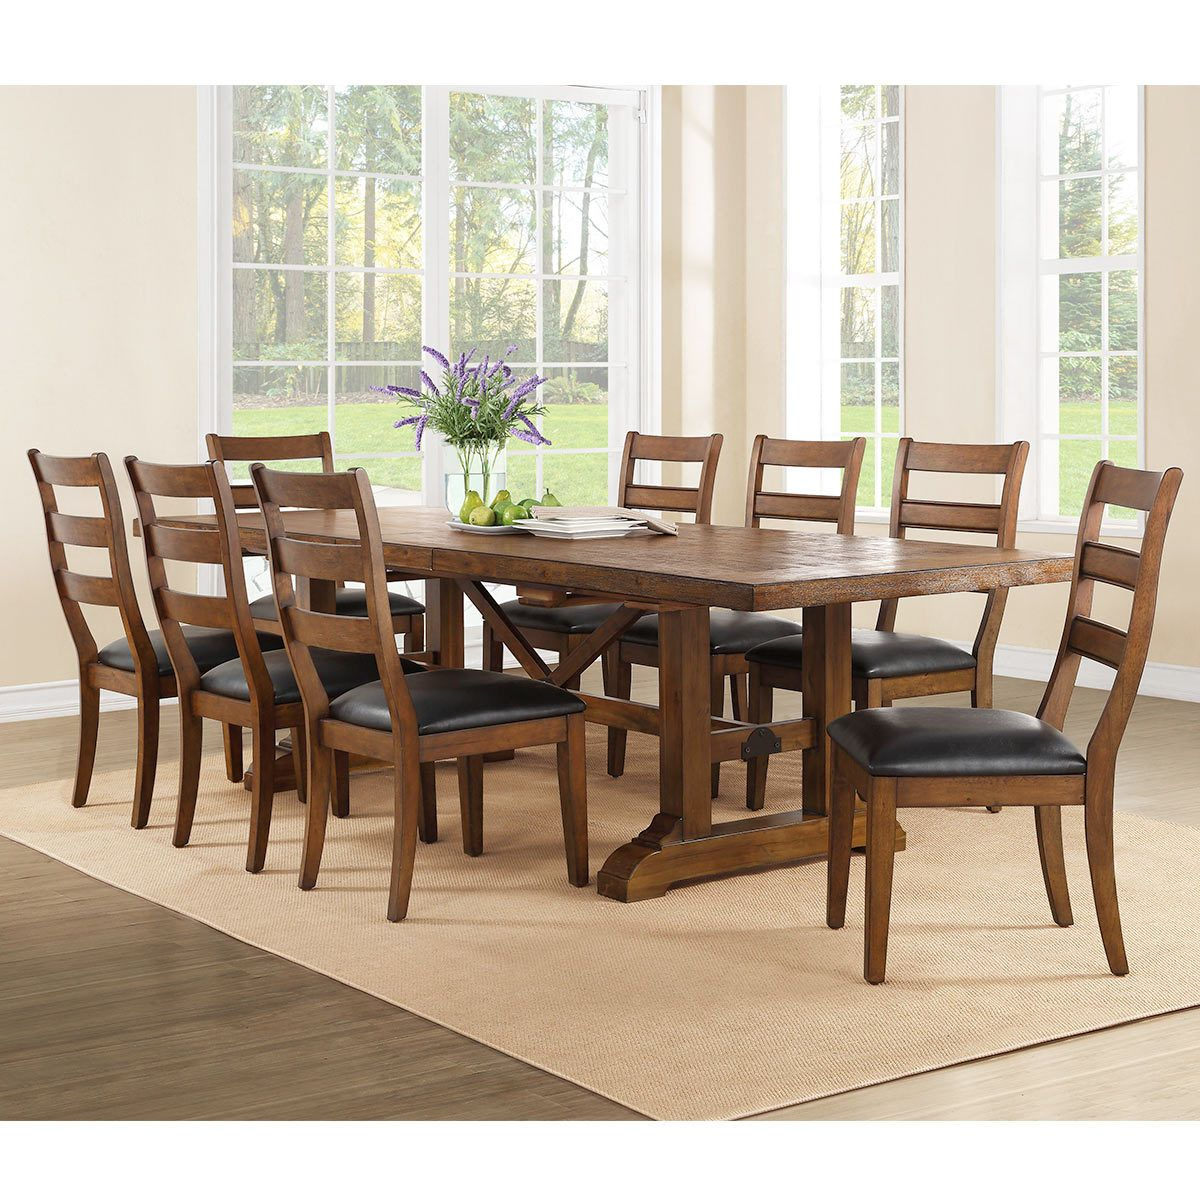 Bayside Furnishings Extending Dining Room Table 8 Chairs Costco Uk Bayside Furnishings Dining Table Dining Room Table Set